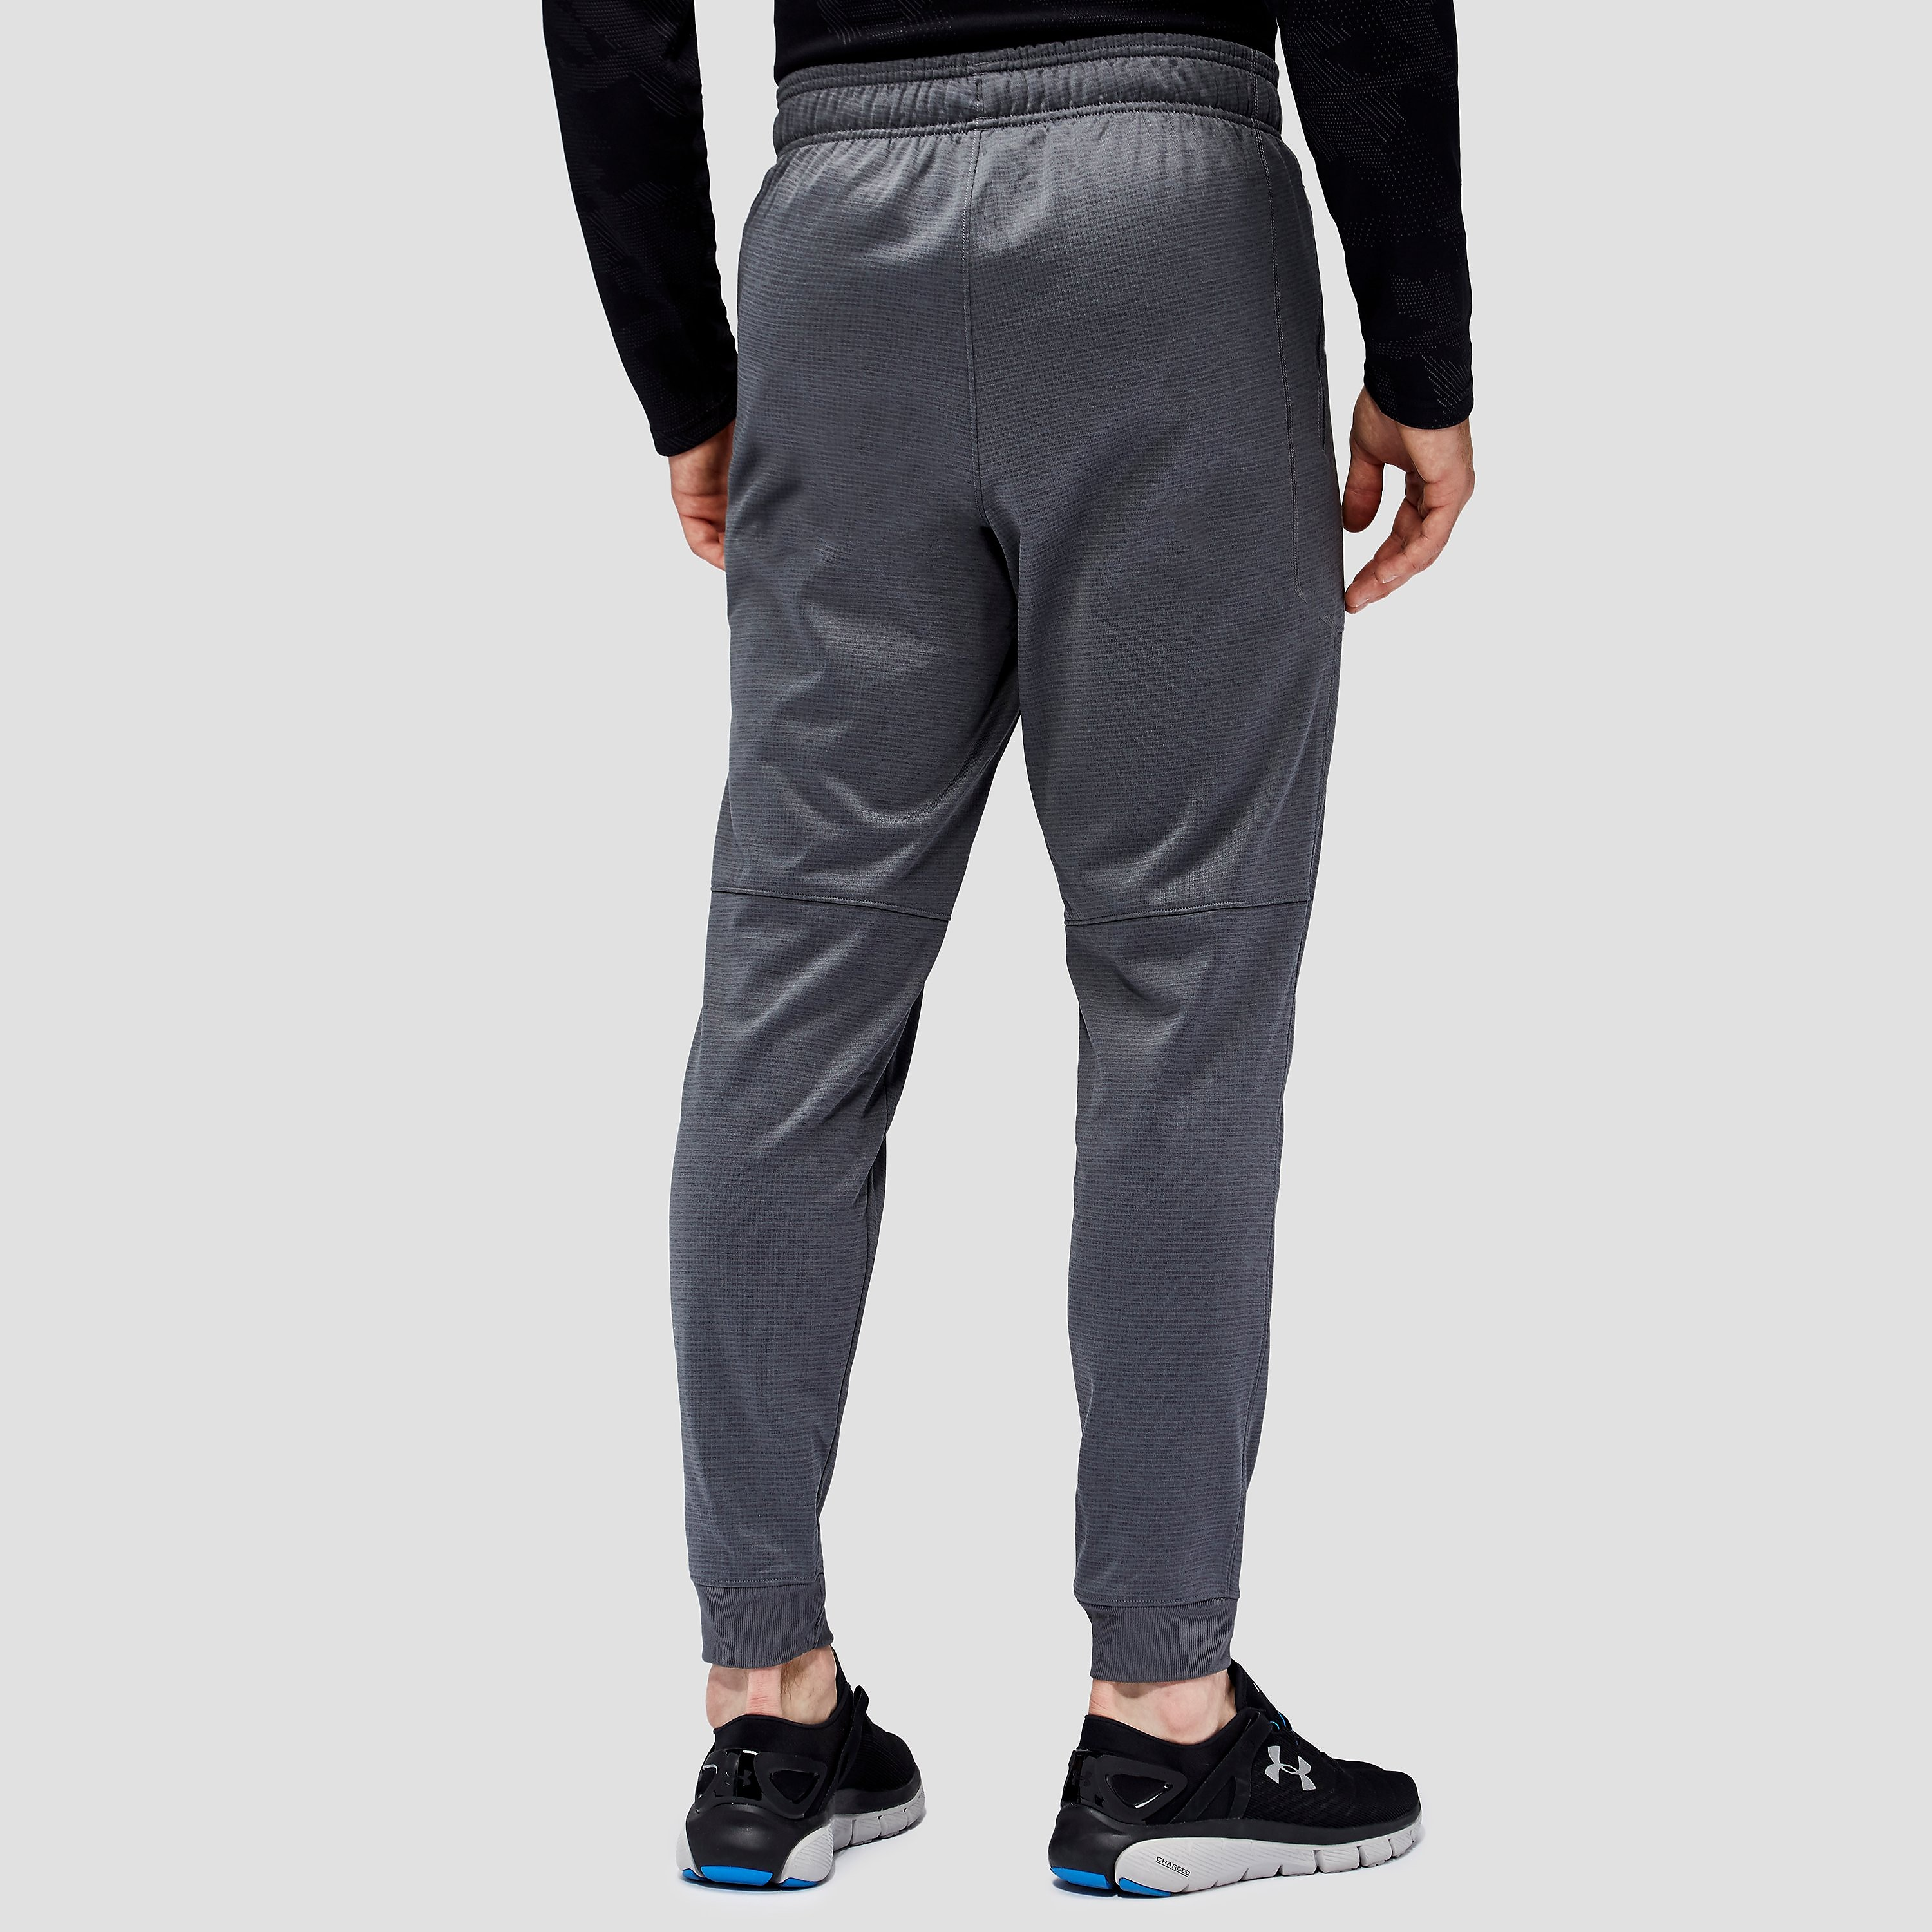 Under Armour Storm Fleece Men's Pants